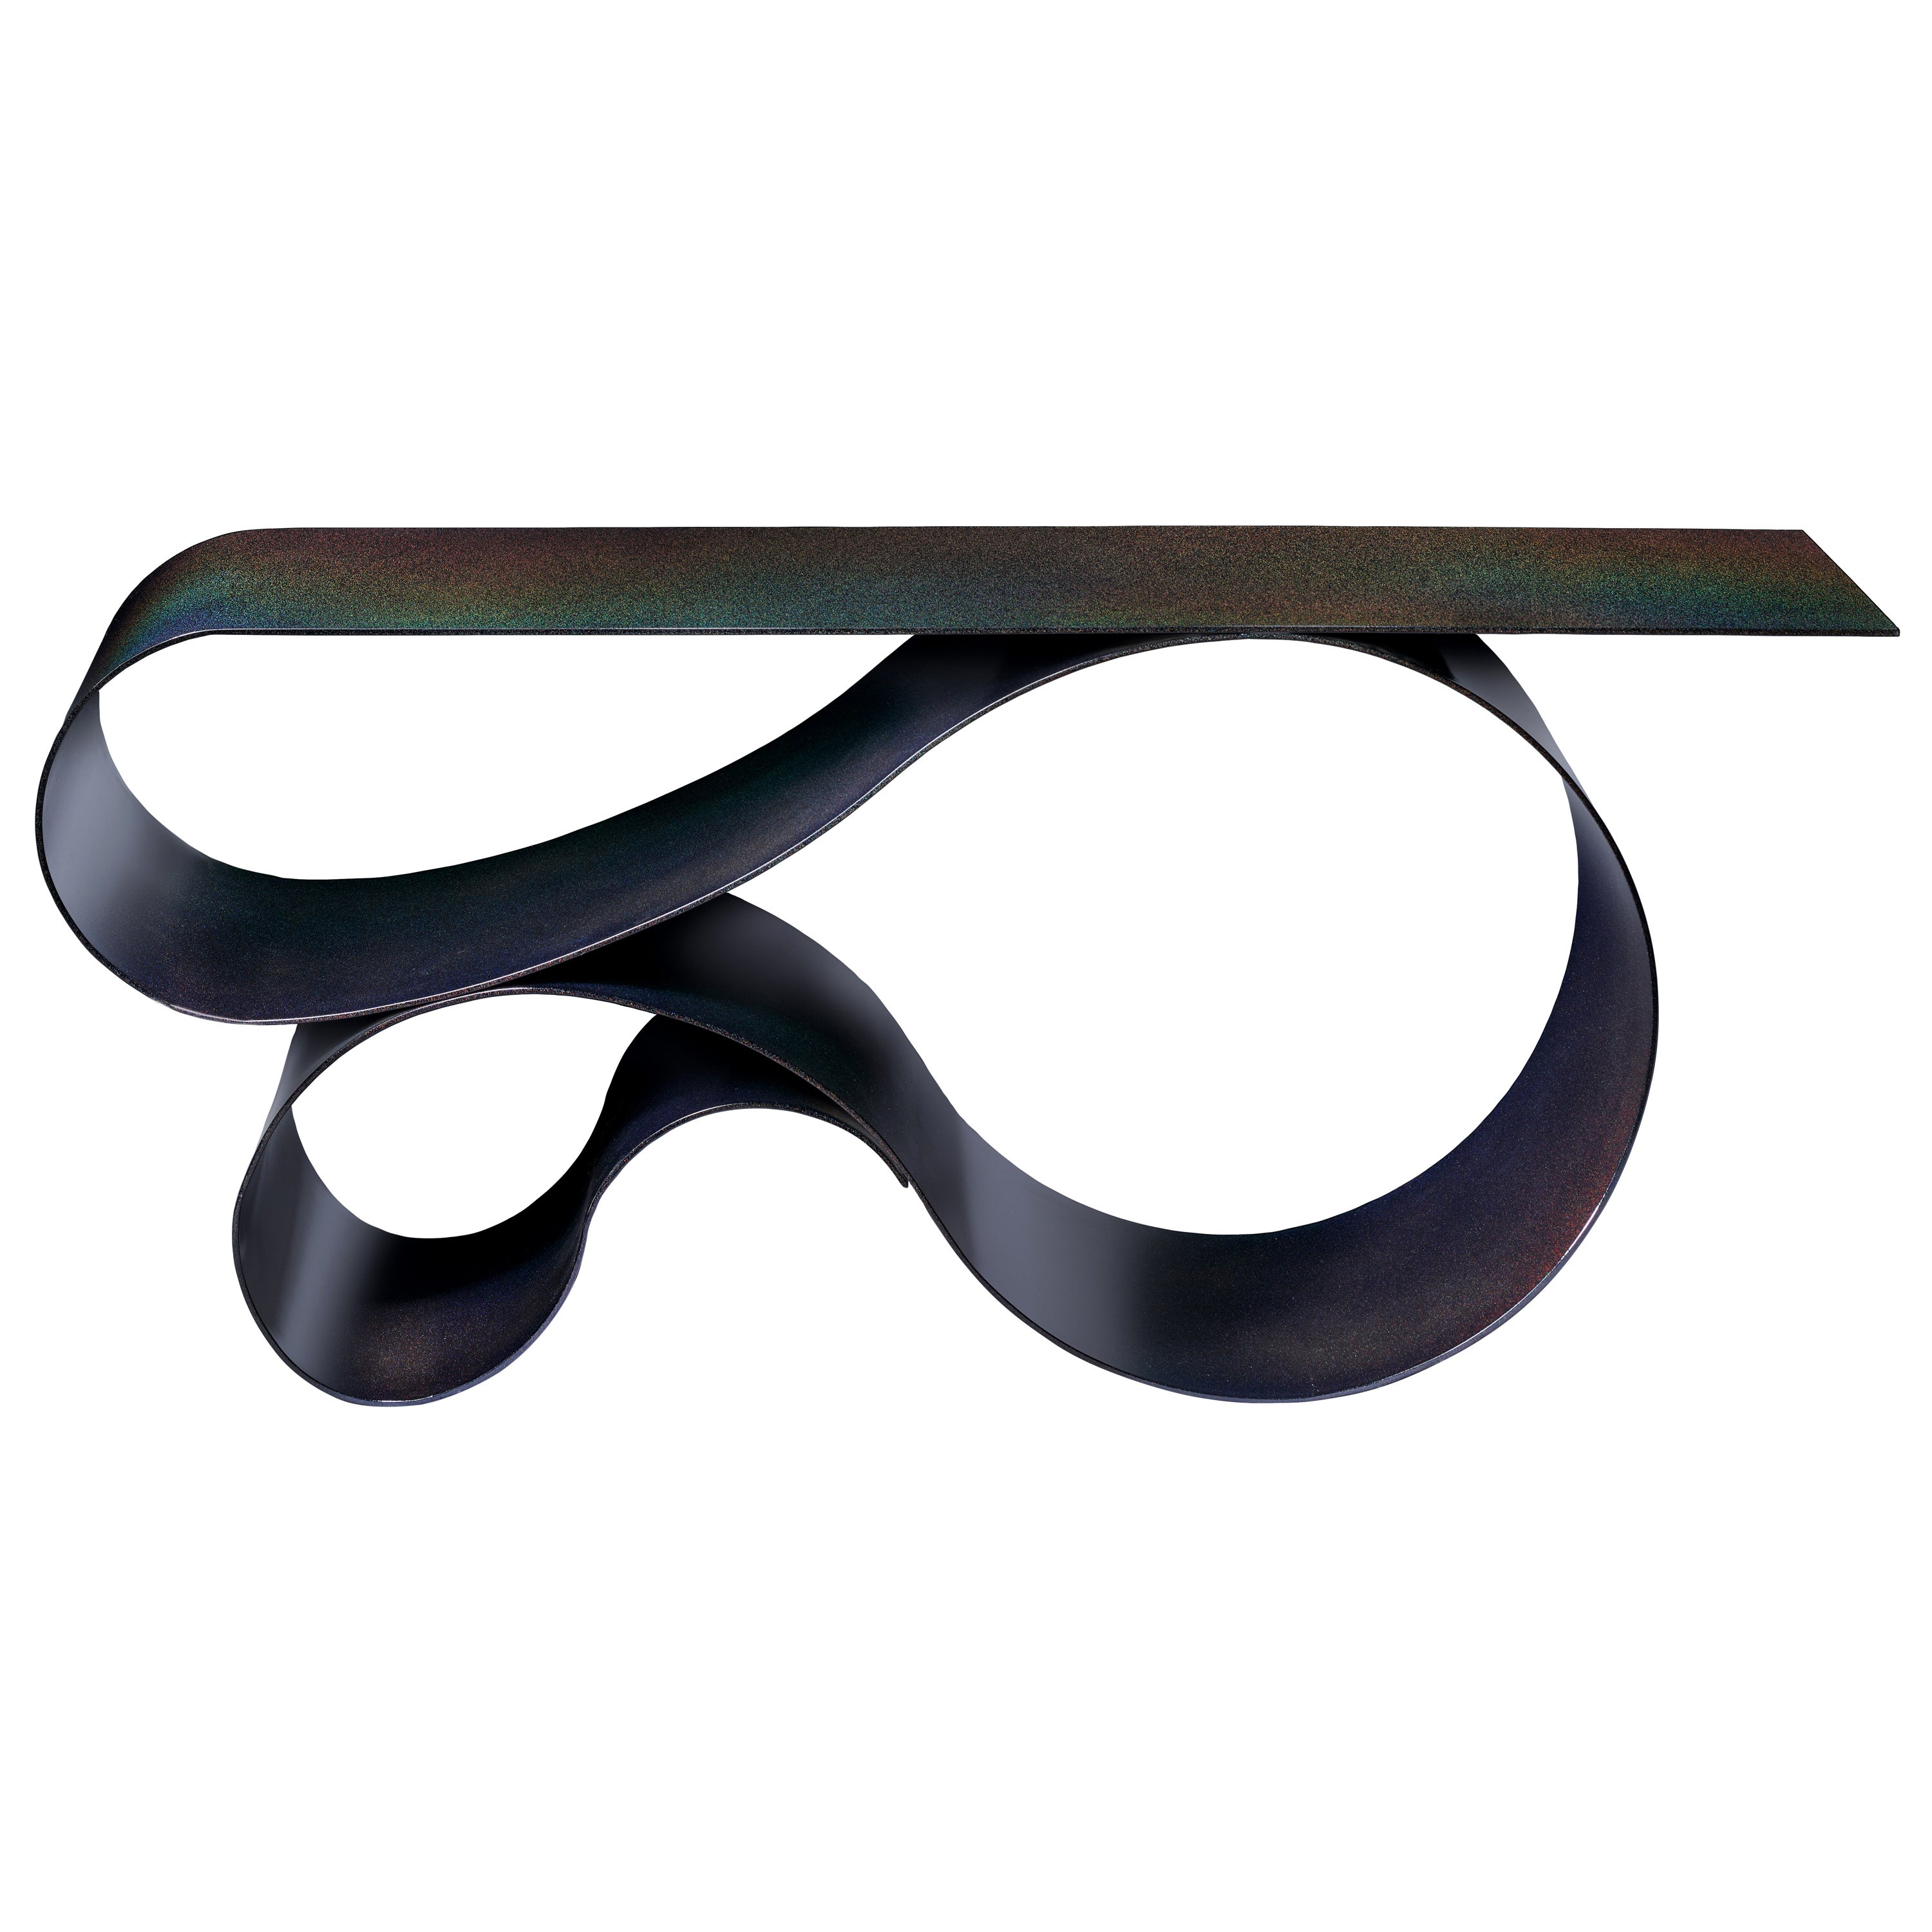 Whorl Console, in Black Iridescent Powder Coated Aluminum by Neal Aronowitz